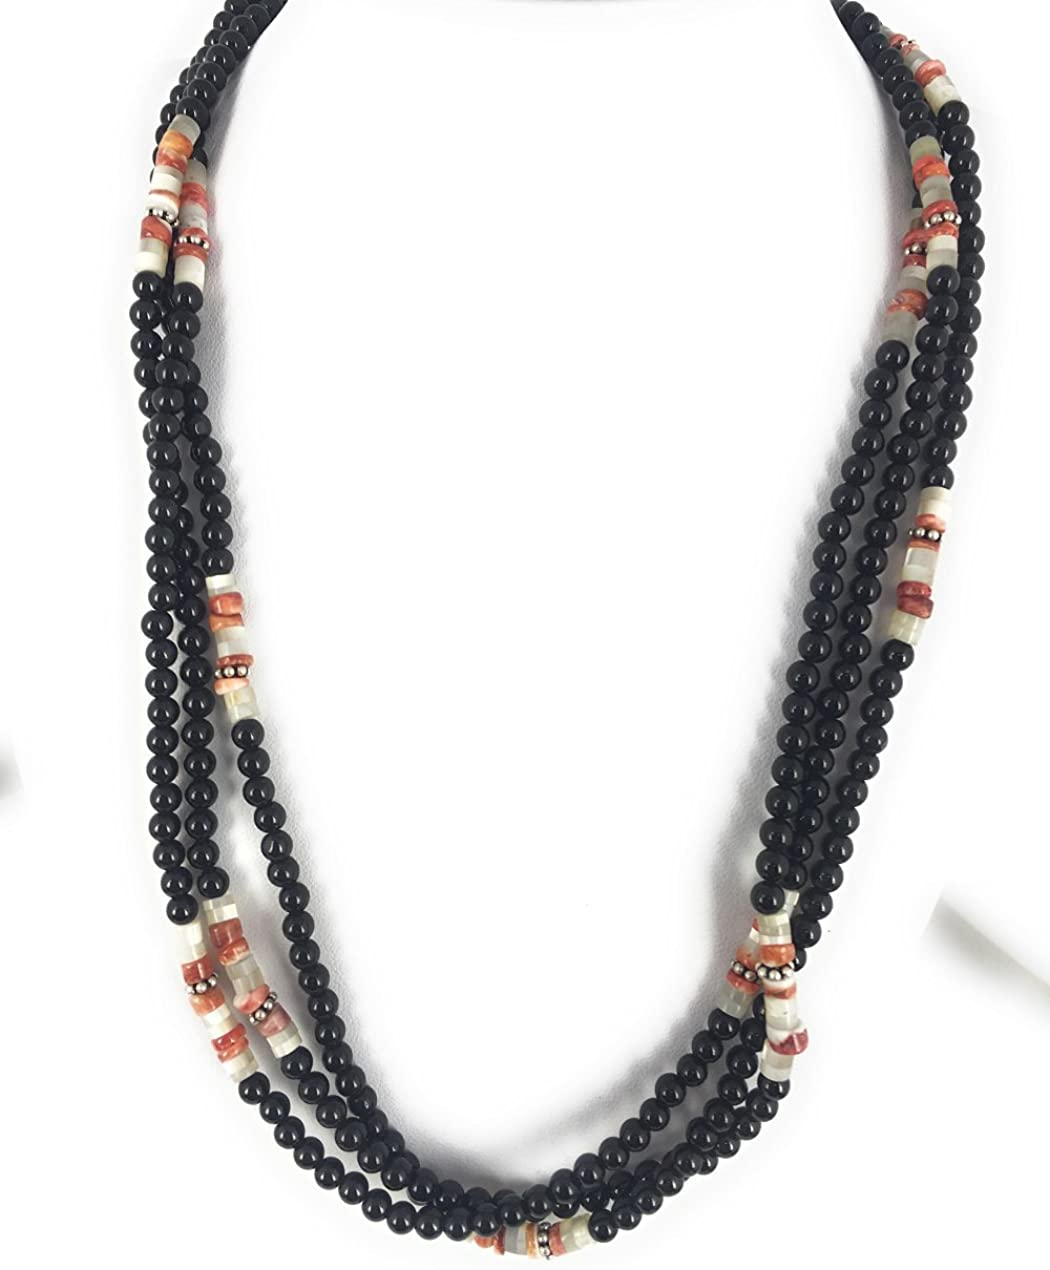 3 Strand Wedding Gift Made in USA Onyx Spiny Oyster Ship Within 24 Hours Exclusive Southwestern Handmade Jewelry Sterling Silver Necklace Turquoise